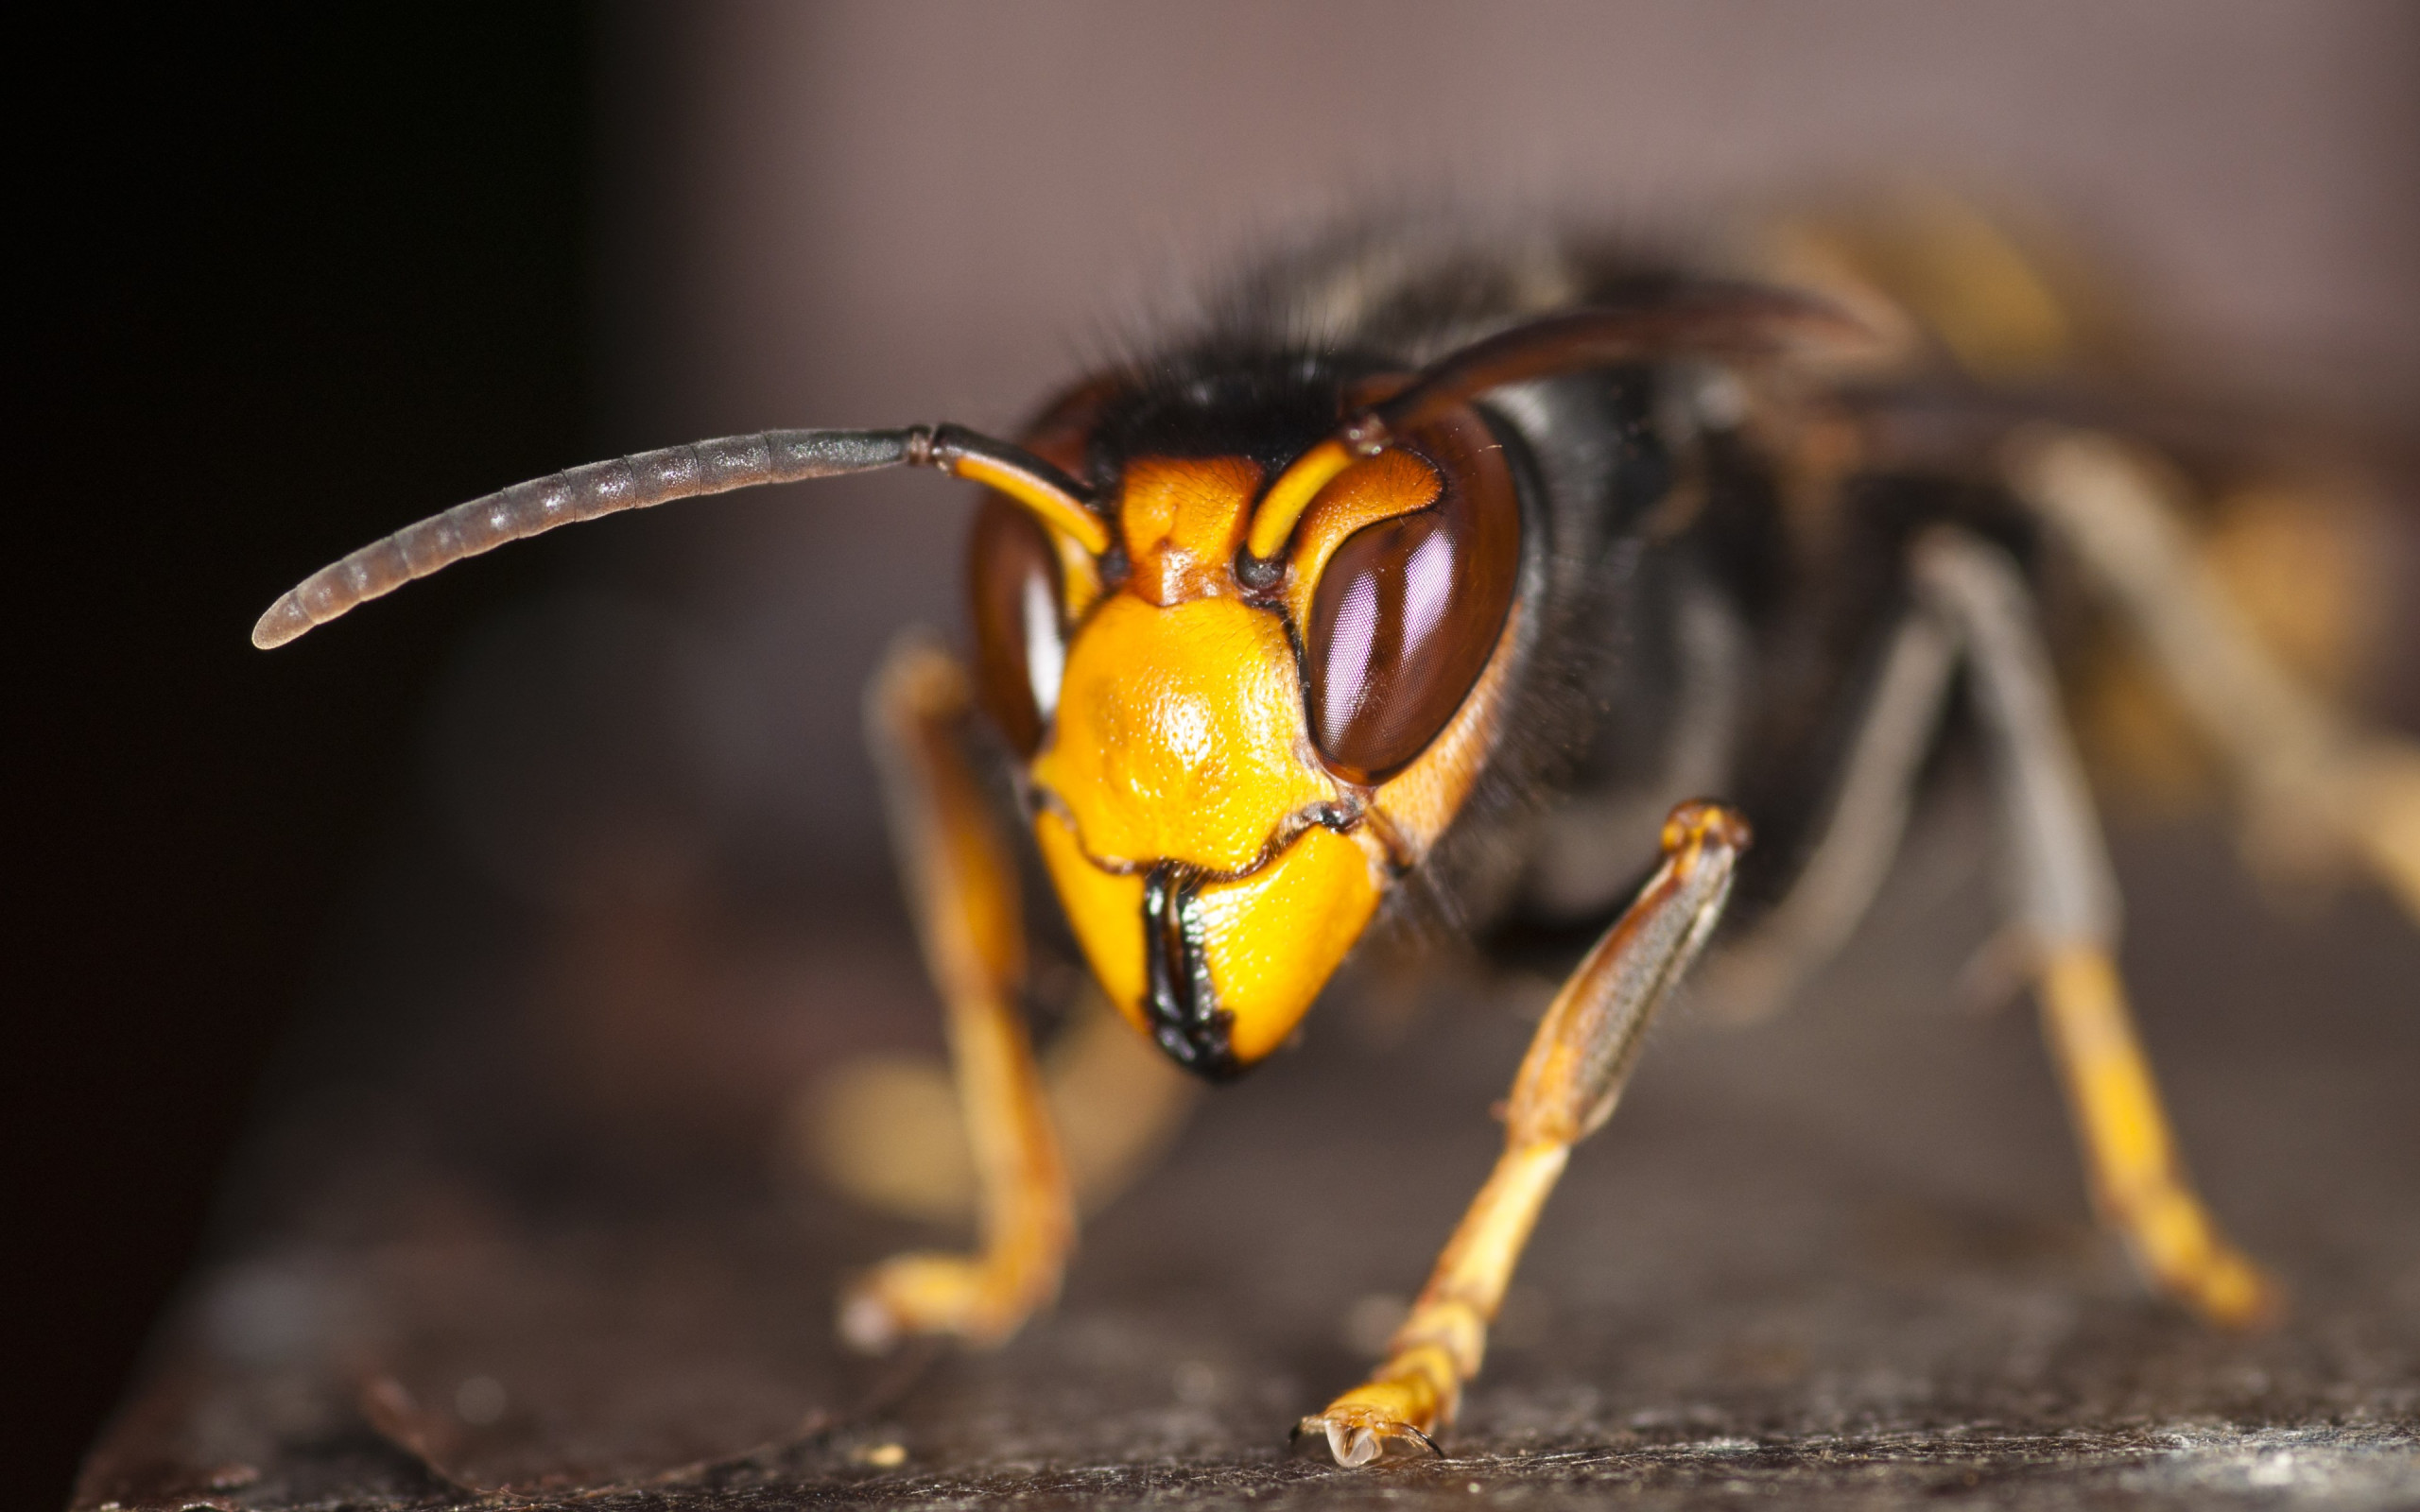 Asian hornet wallpaper 2560x1600